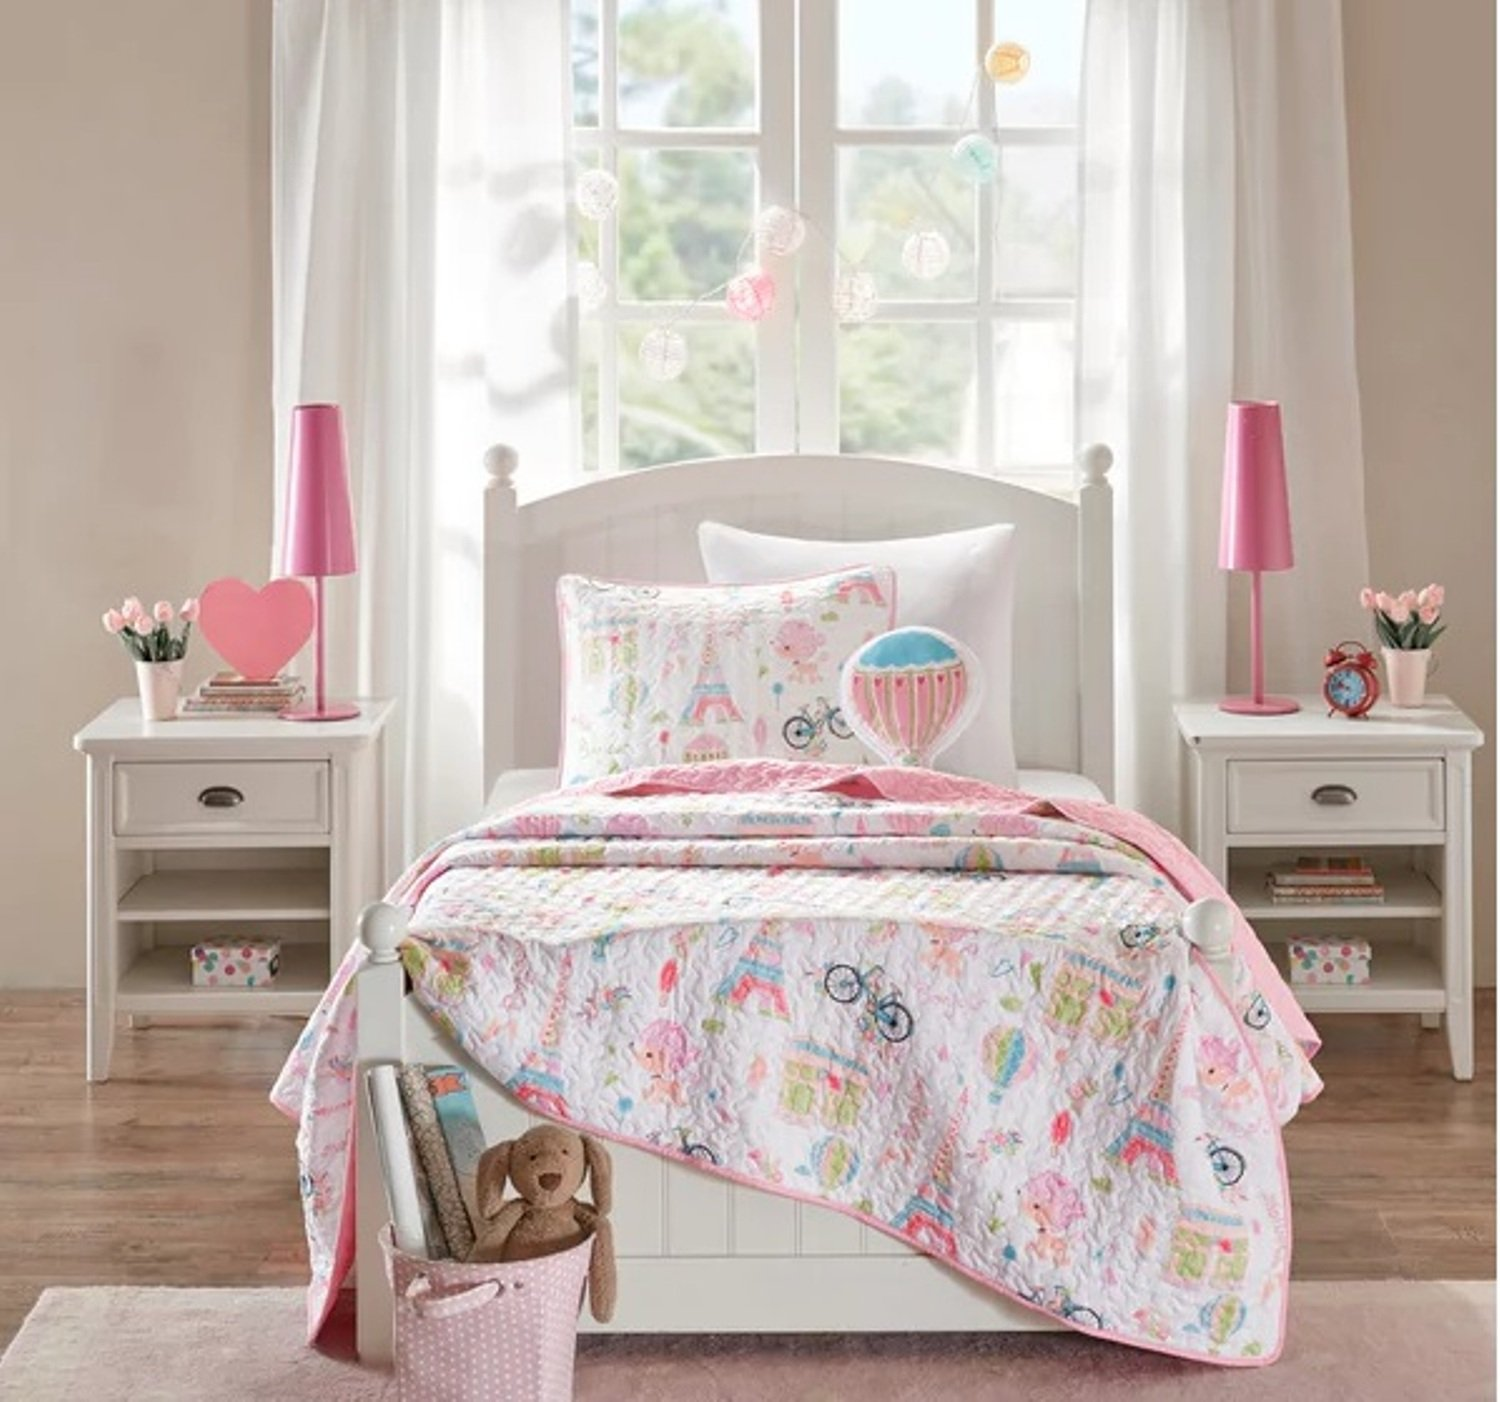 3 Piece Paris Dreamland Themed Coverlet Set Twin Size, Featuring Hot Air Balloons Poodles Bicycles Eiffel Tower Design Bedding, Casual Novelty Parisian Inspired Chic Girls Bedroom, Pink, White by SE